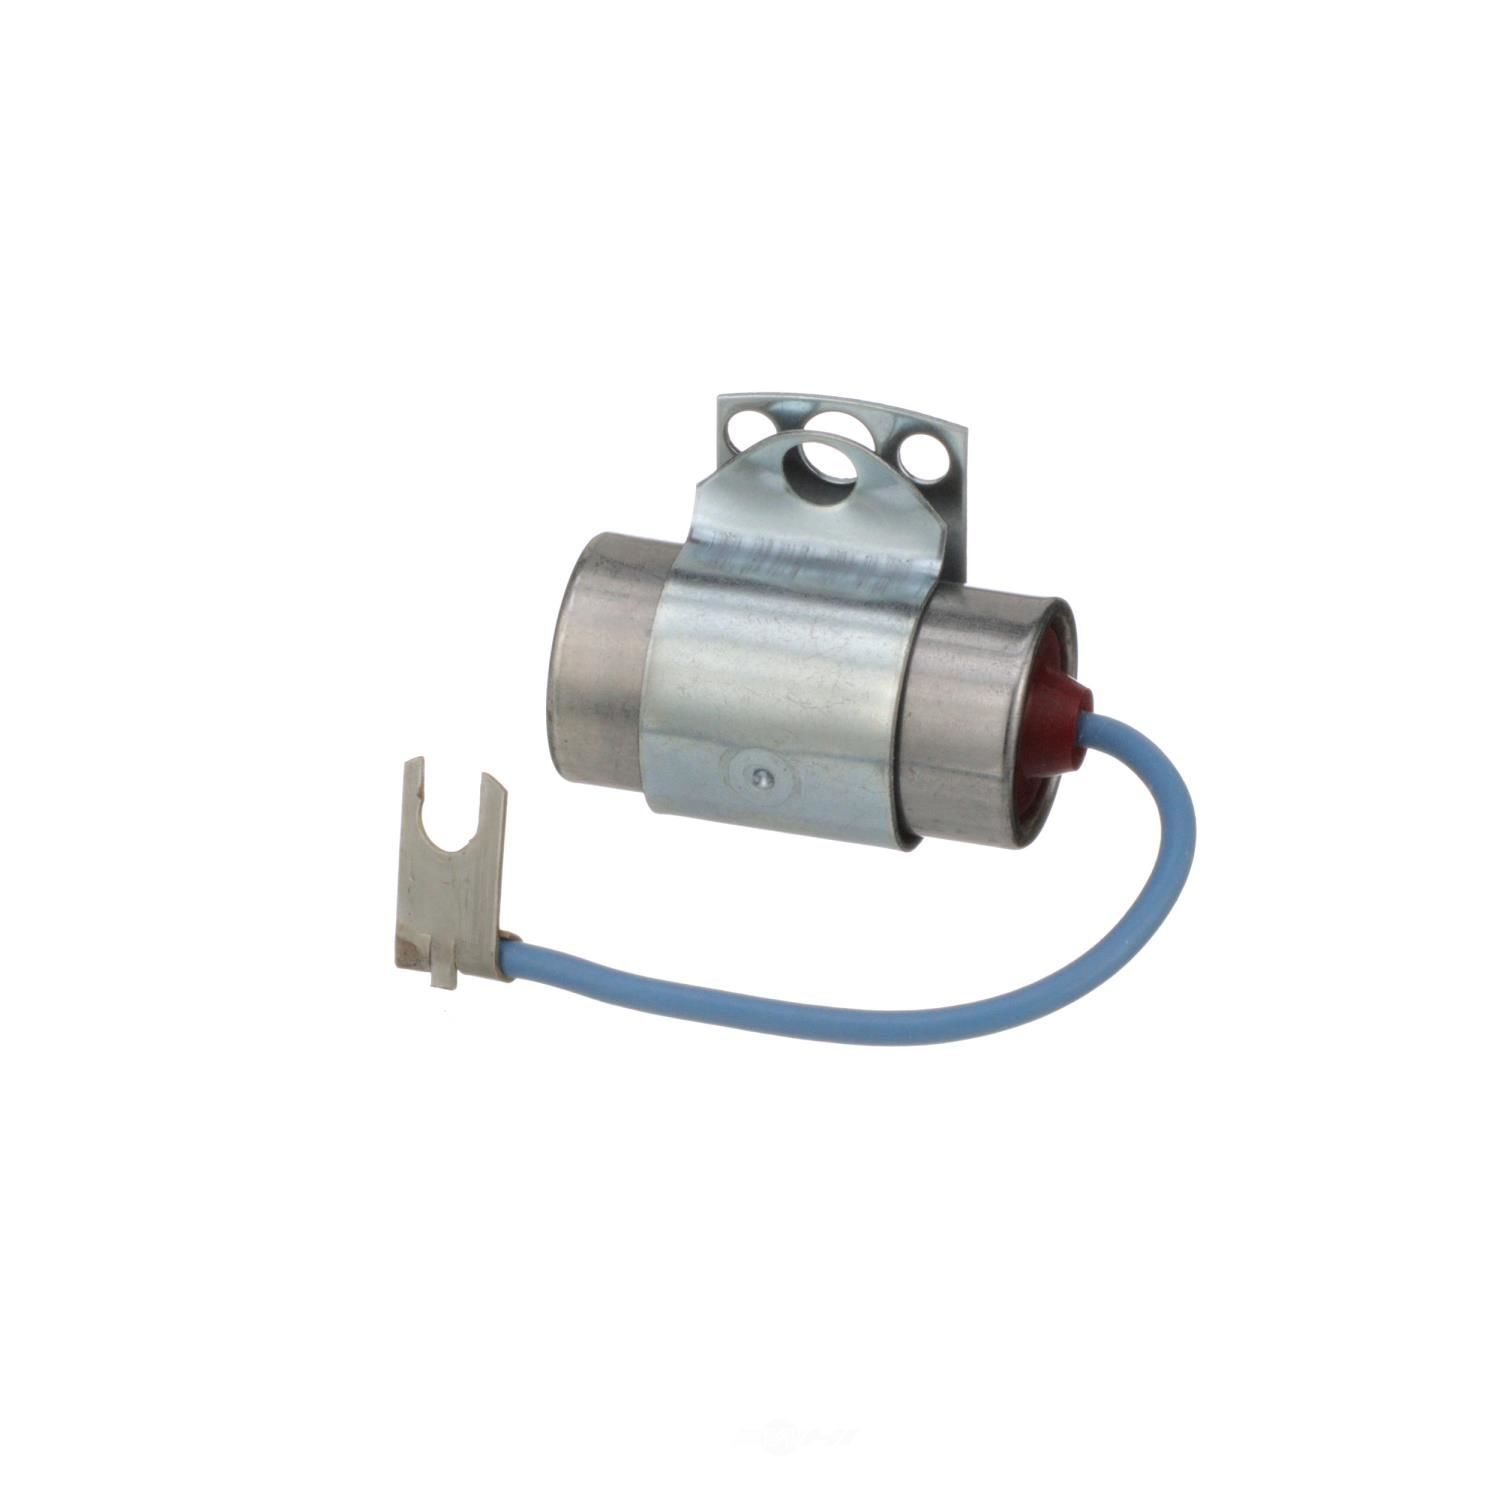 STANDARD MOTOR PRODUCTS - Ignition Condenser - STA DR-60